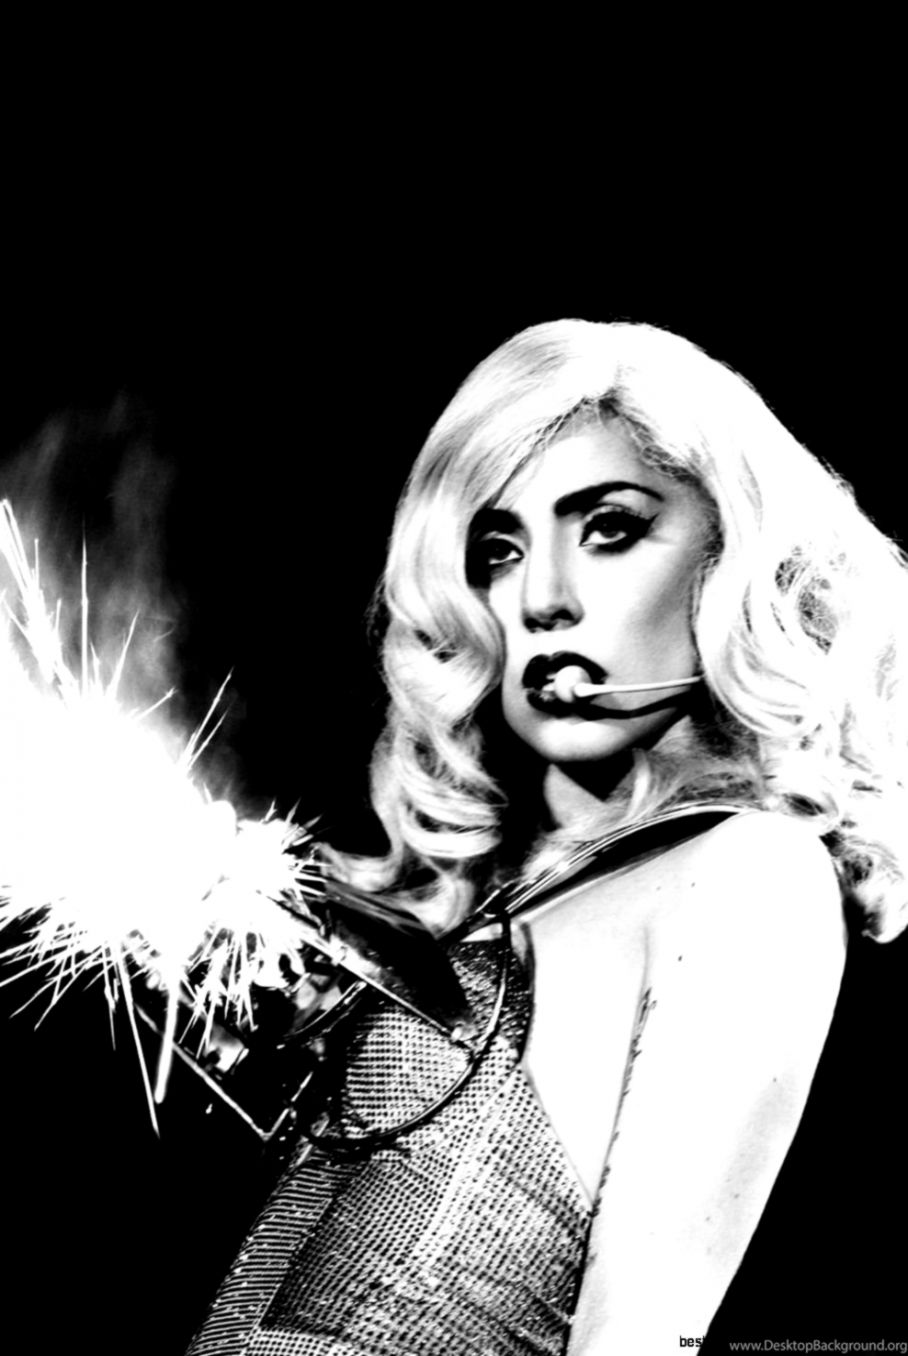 Lady Gaga Wallpapers Iphone Desktop Background